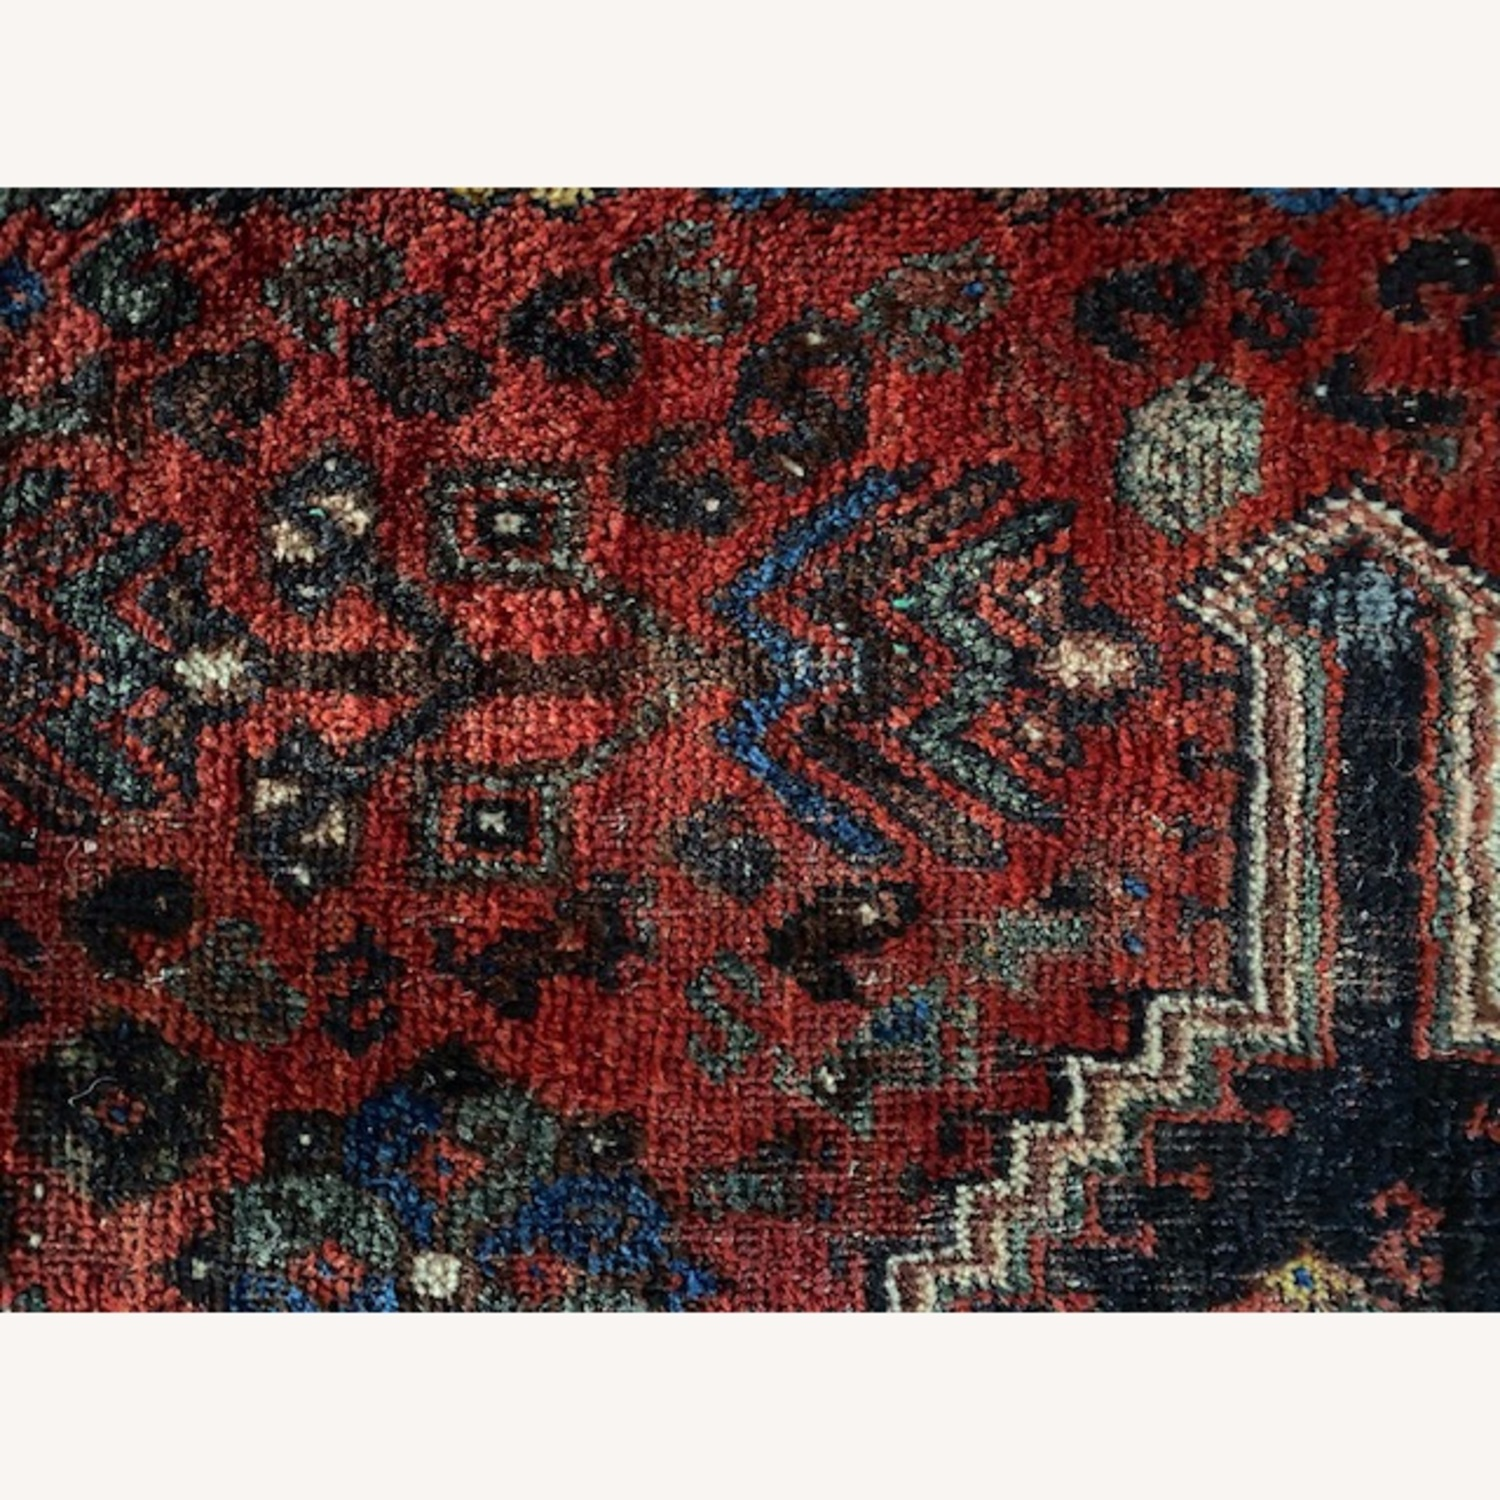 Vintage Persian Hand-knotted Wool Tribal Rug - image-1